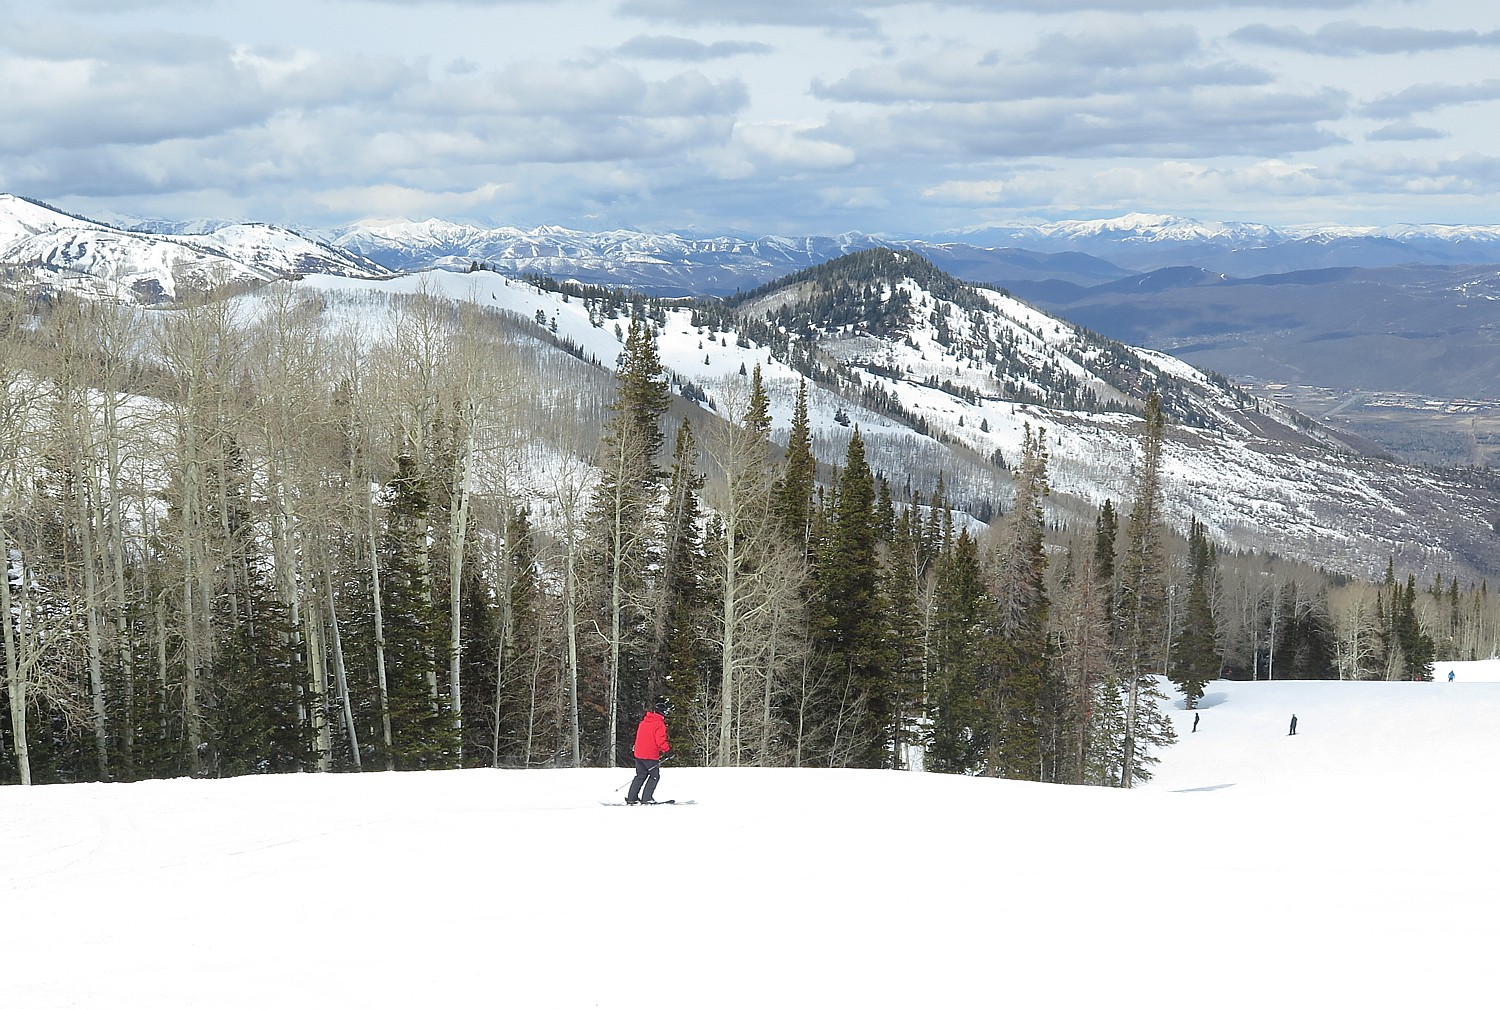 vail | goingplacesnearandfar's blog